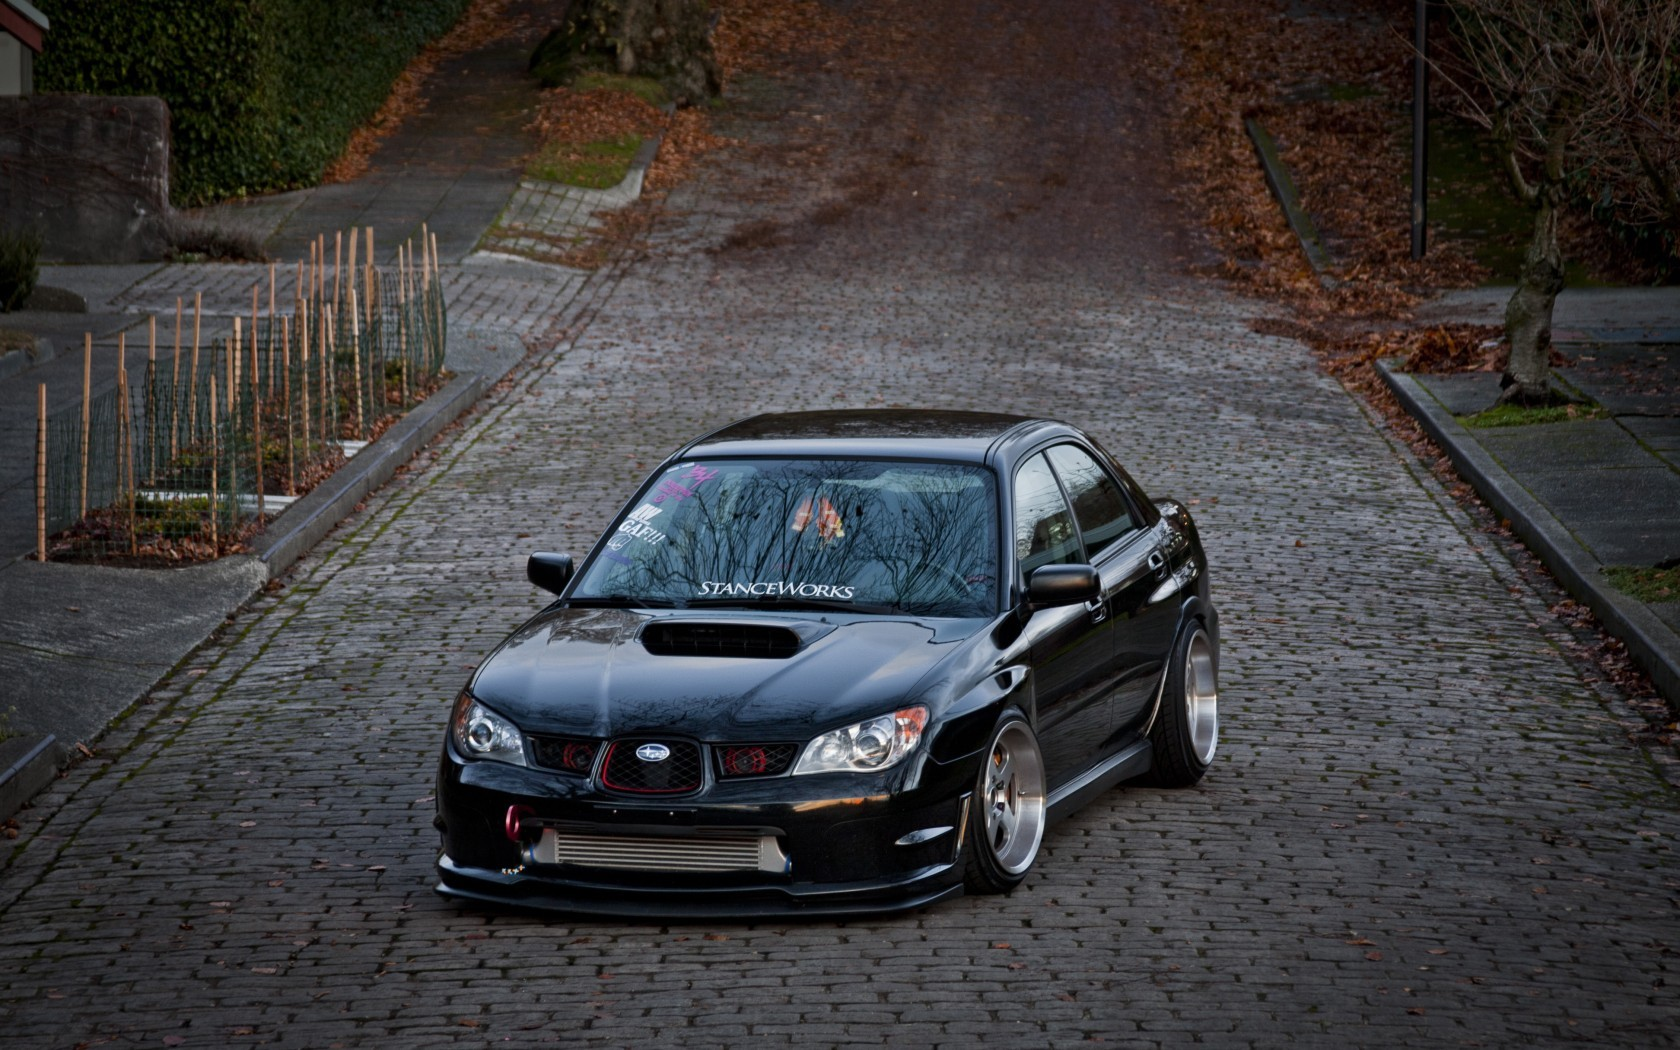 16986 download wallpaper Transport, Auto, Subaru screensavers and pictures for free